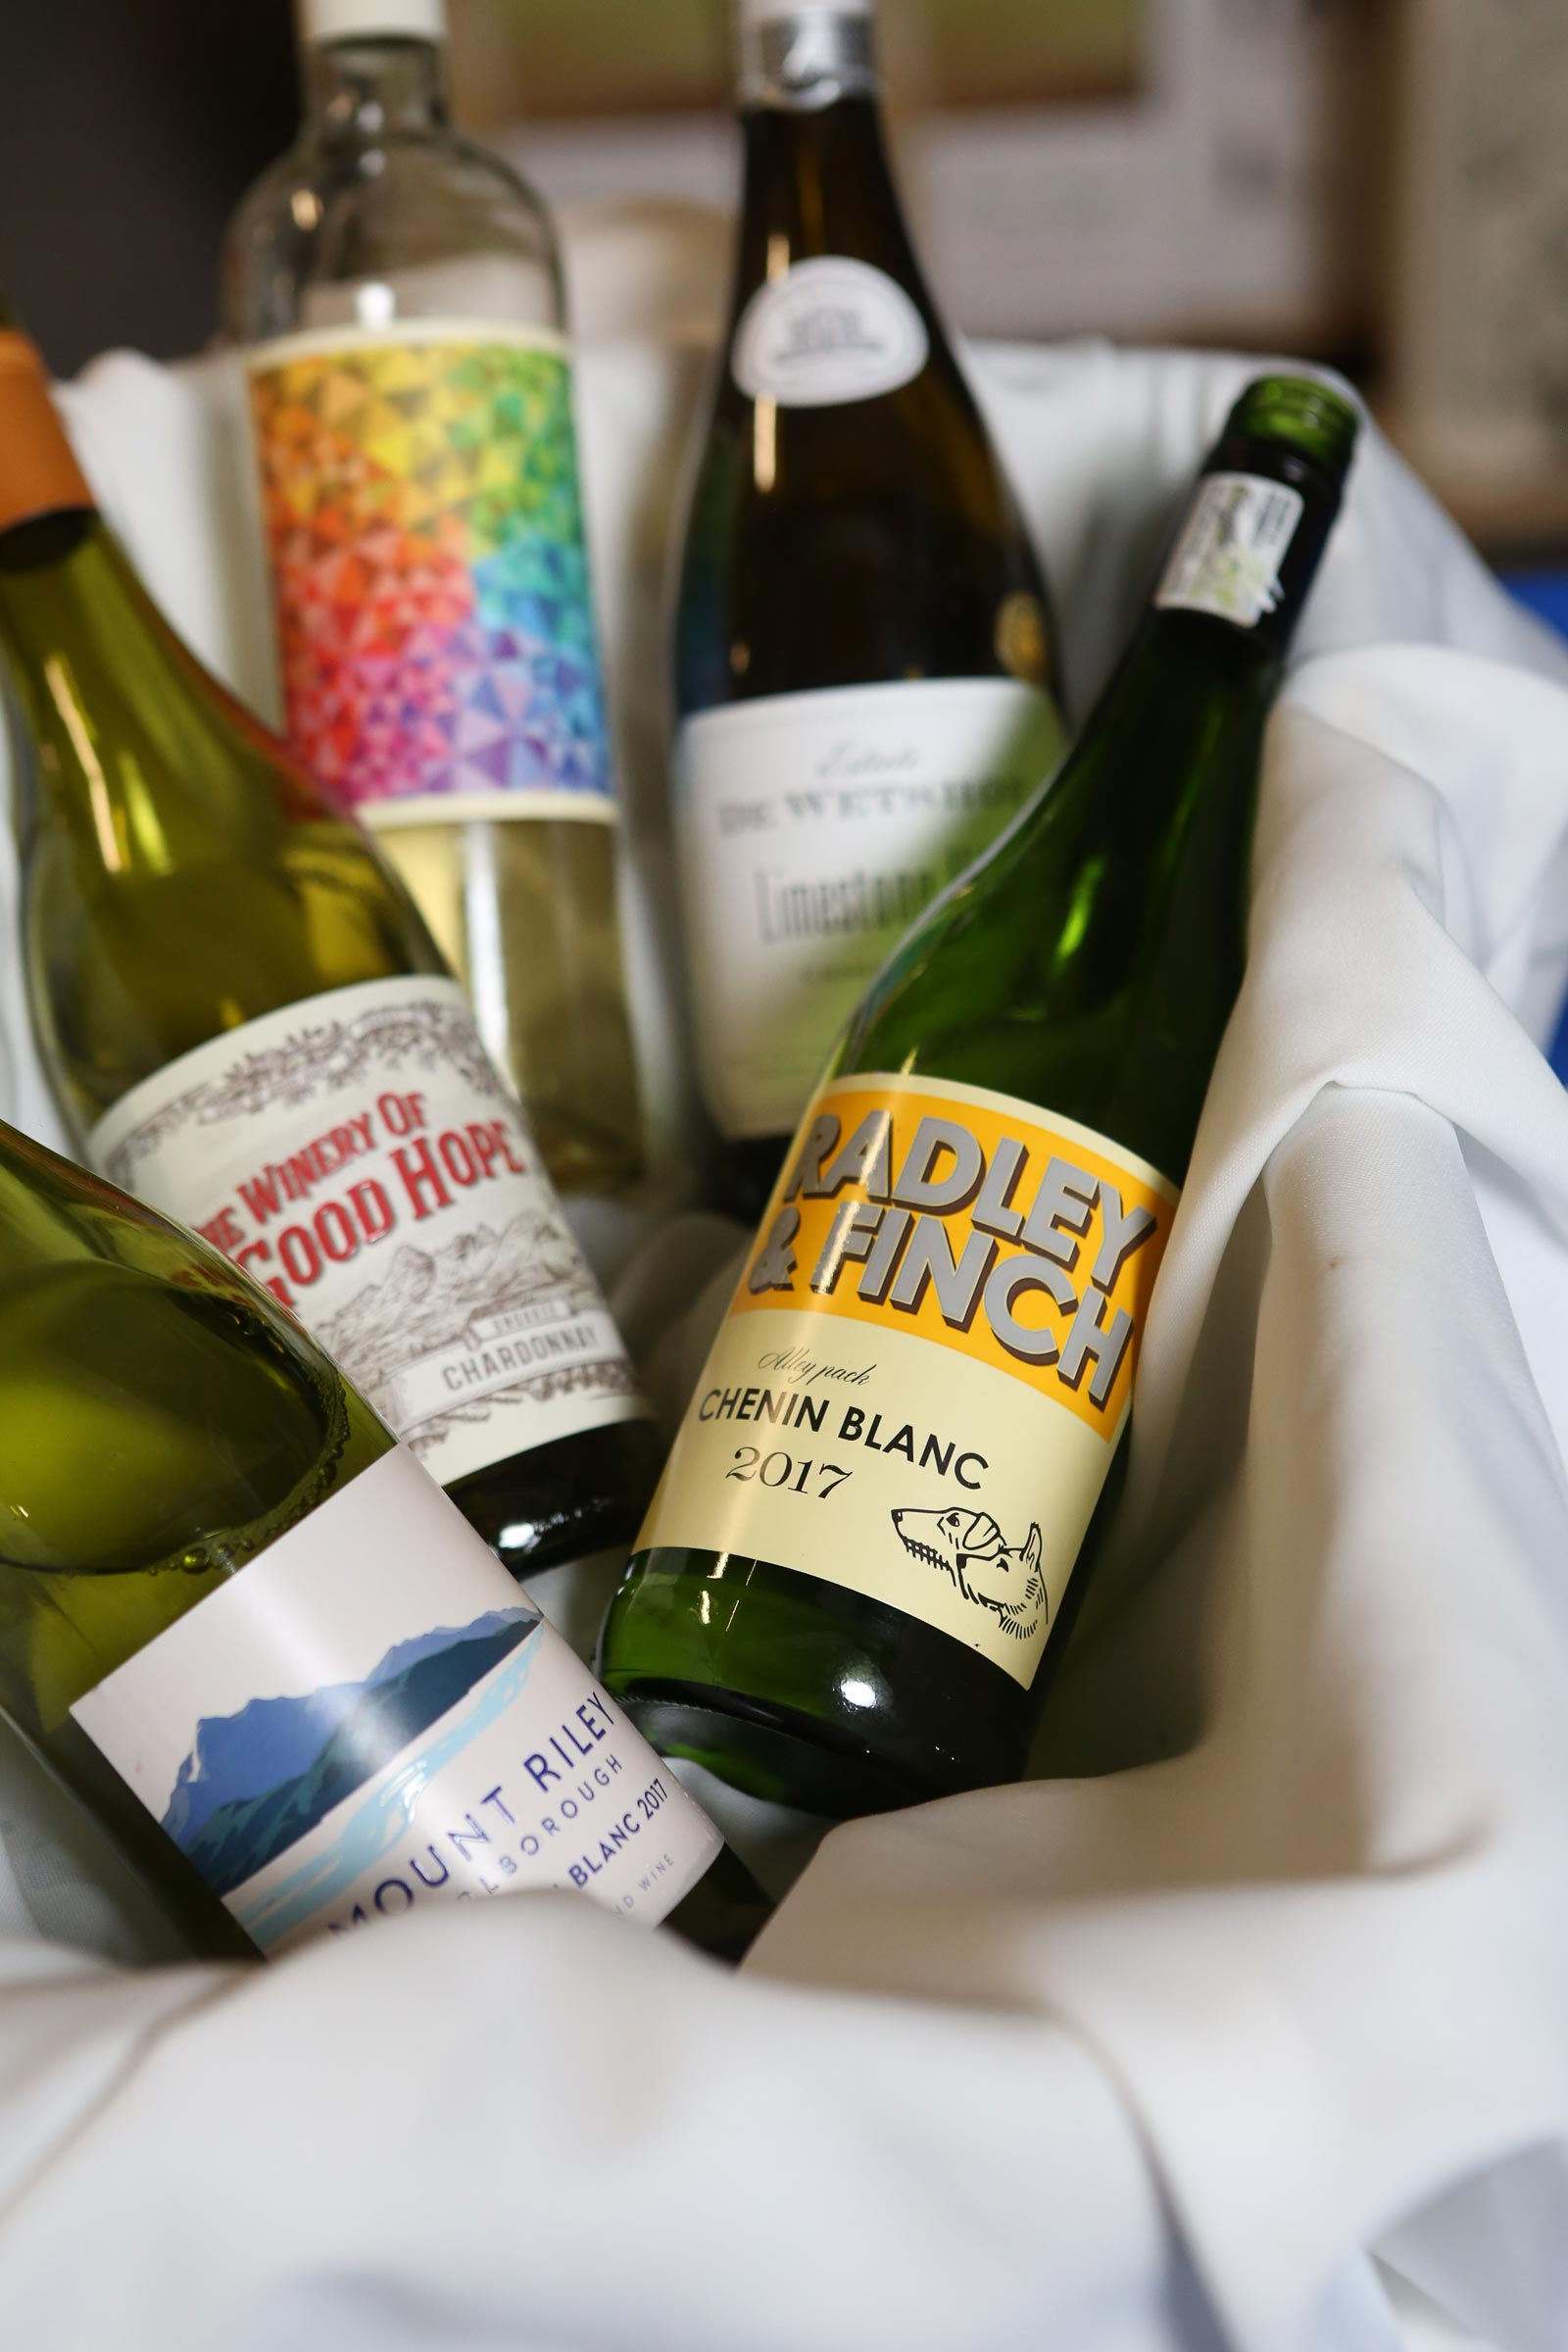 Wine Wizards Highlights New Selections at Spring Tasting